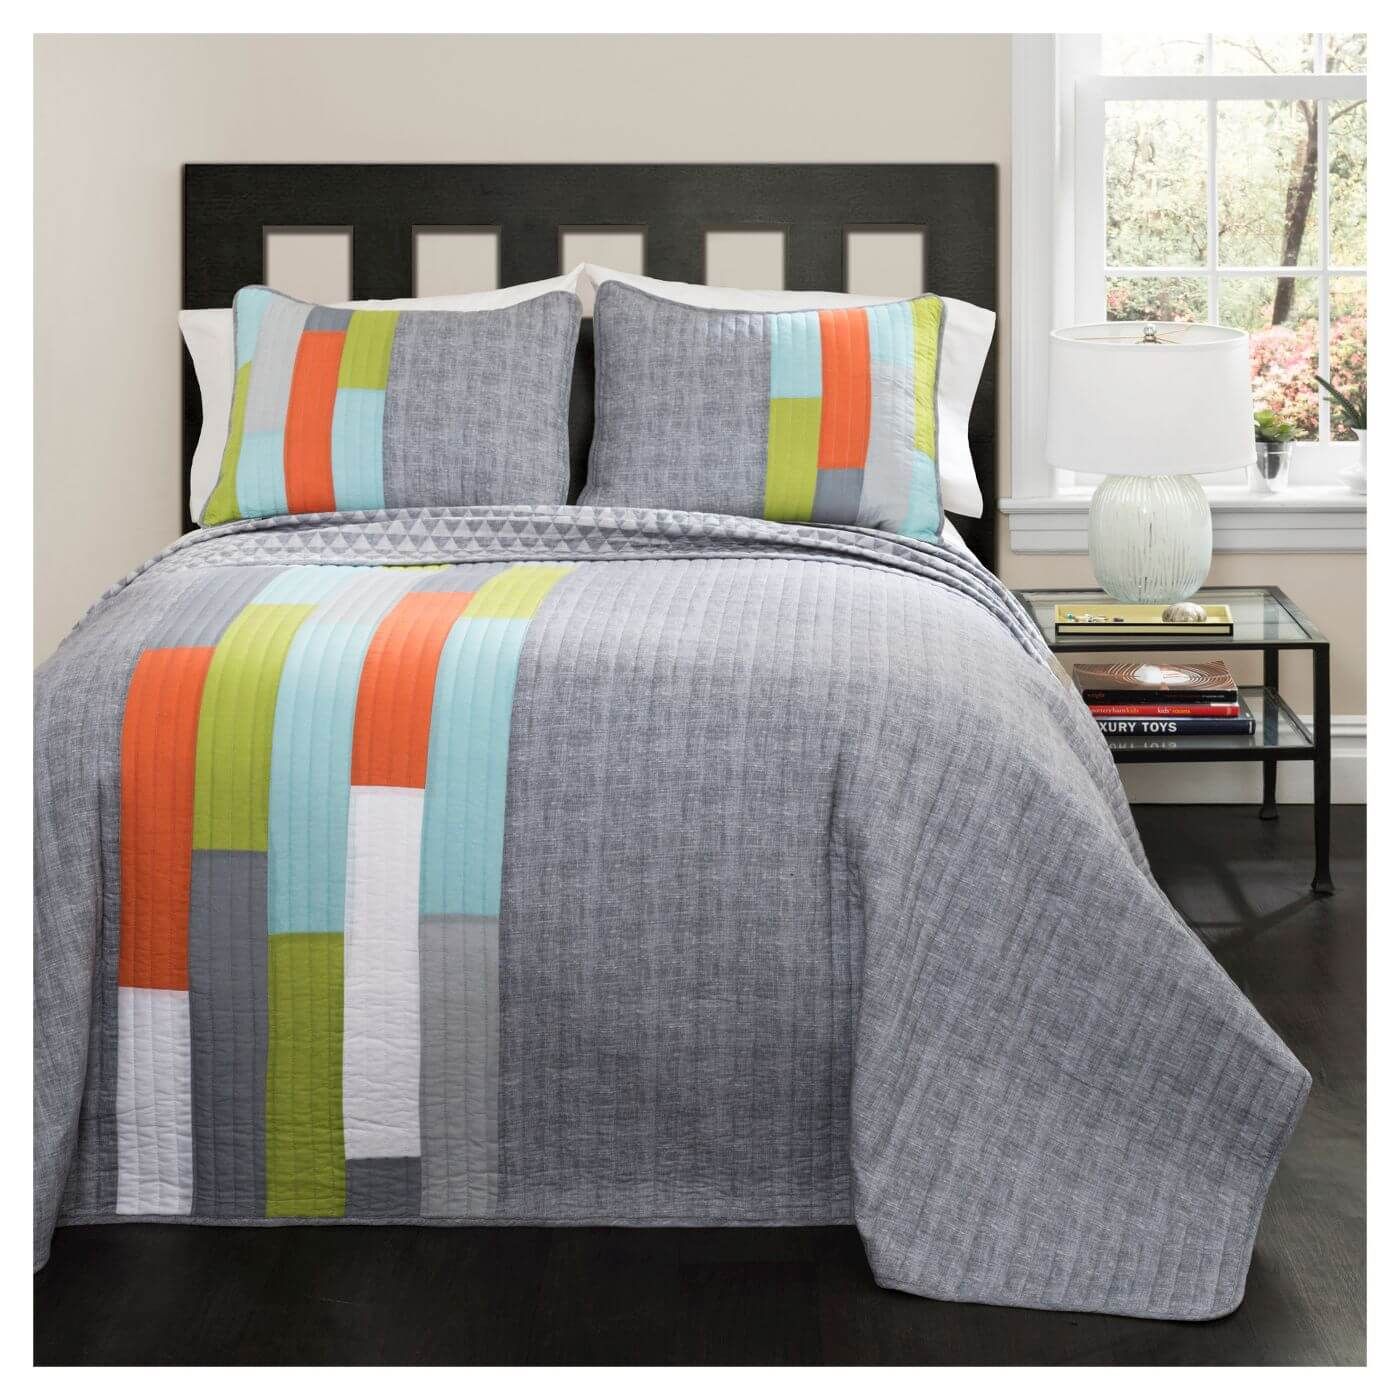 A gray quilt with orange, blue, and green stripe decals.